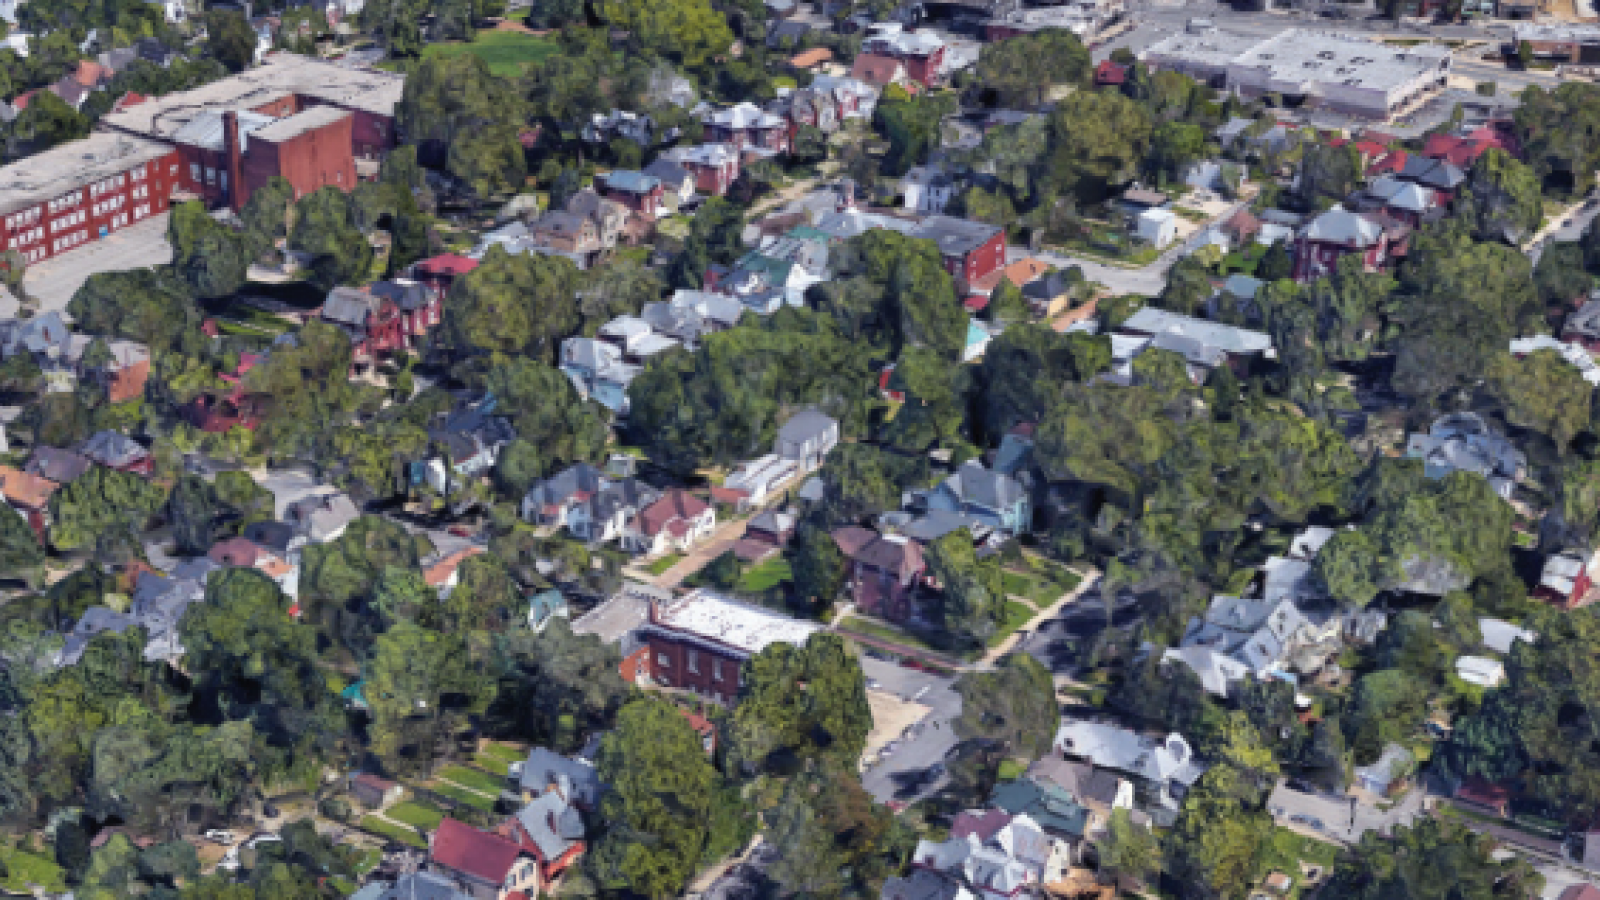 aerial view of a neighborhood from a 3D map